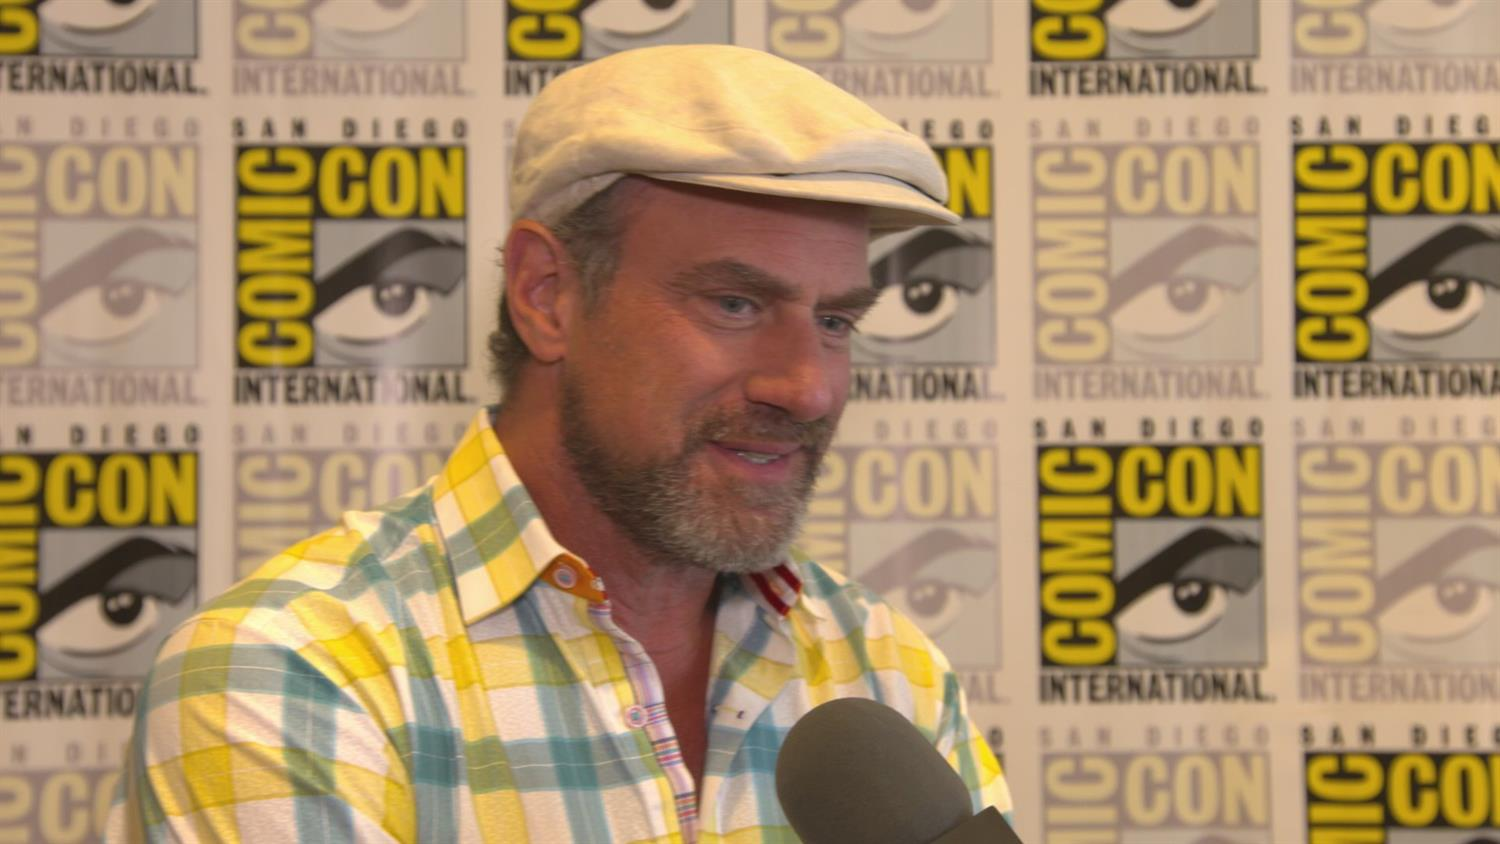 Happy! Brings Together Christopher Meloni and Patton Oswalt